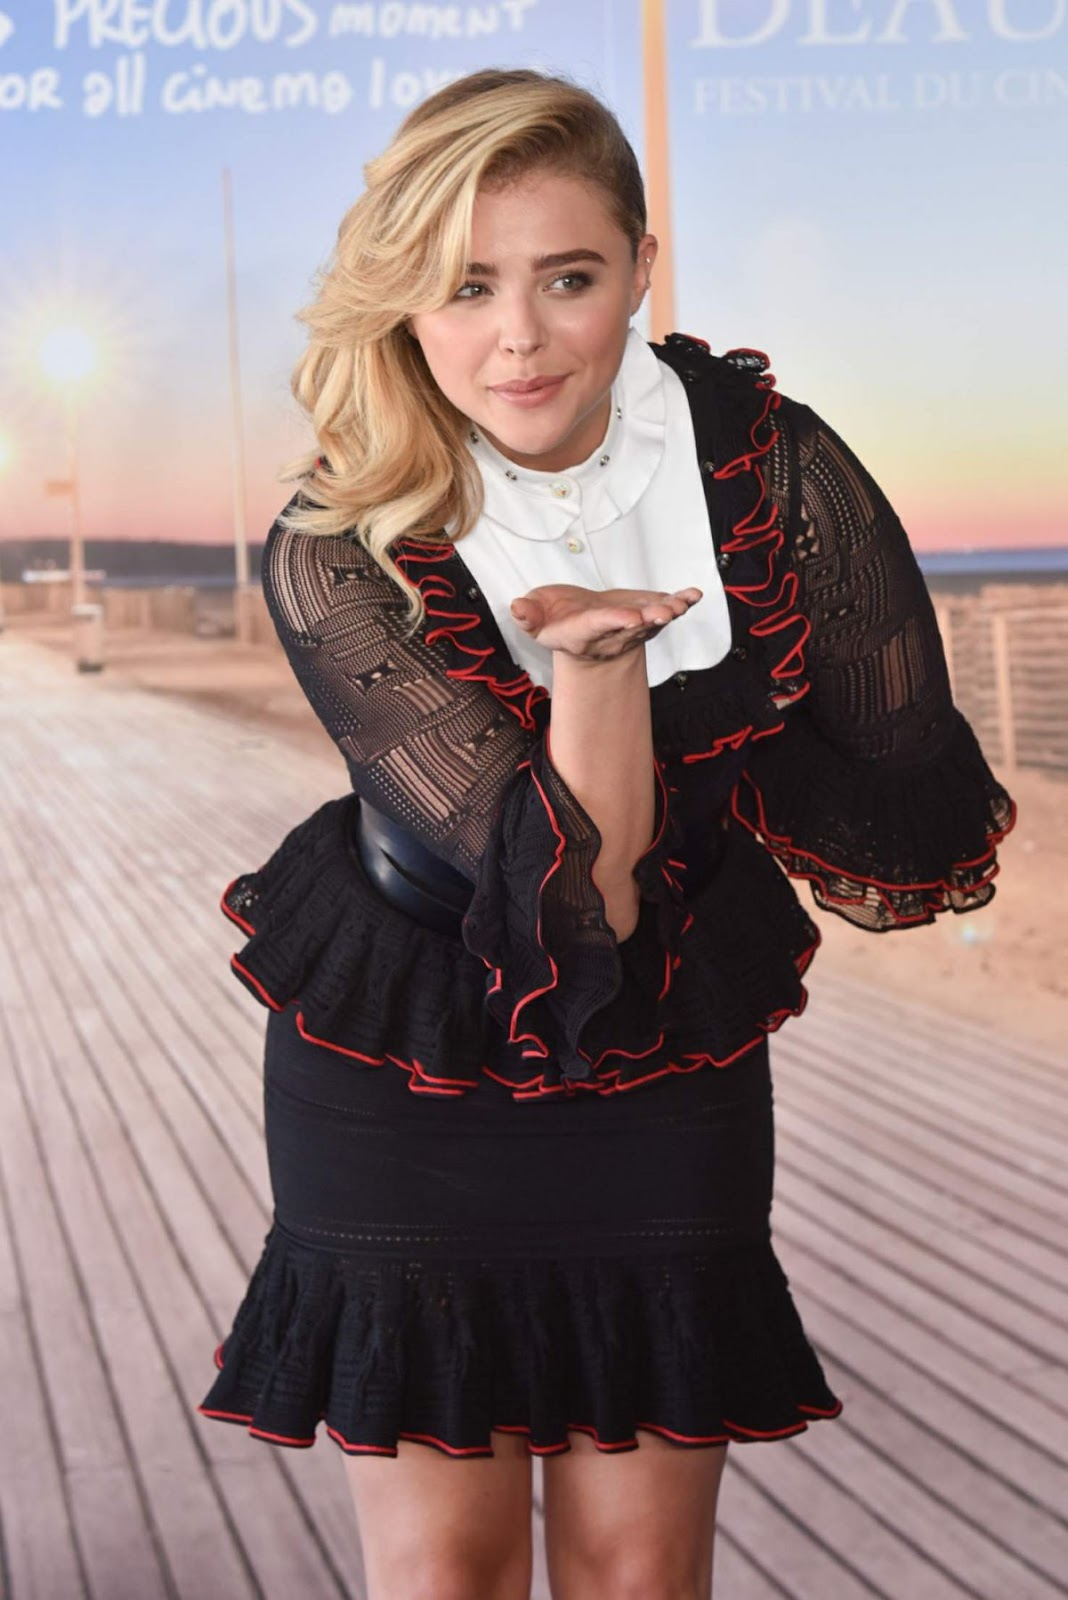 Full HD Photos of Chloe Moretz At Paying Homage Photocall At 42nd Deauville American Film Festival